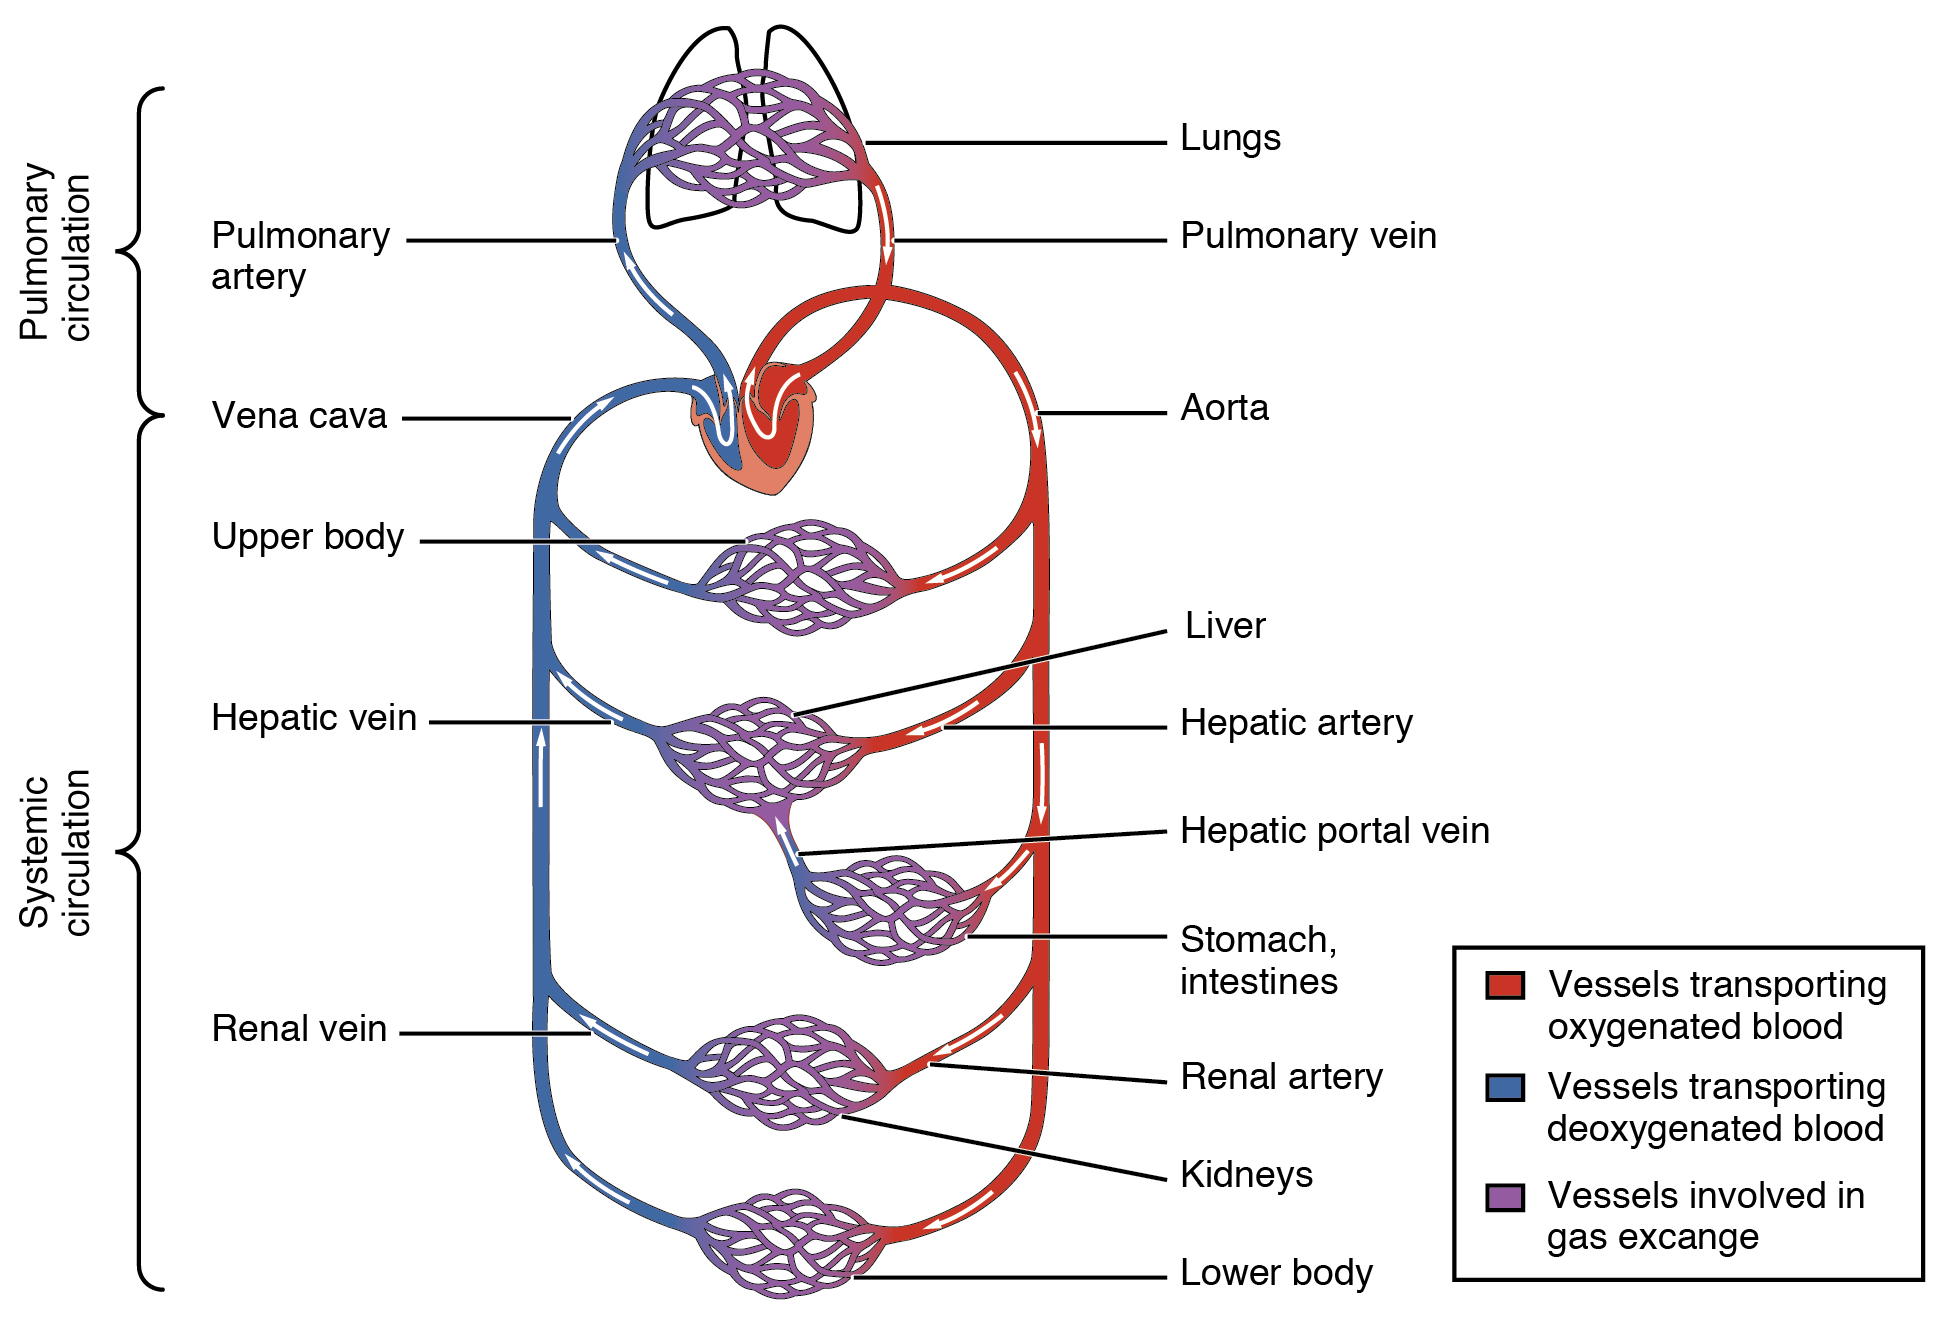 Veins And Arteries Diagram 201 Structure And Function Of Blood Vessels Anatomy And Physiology